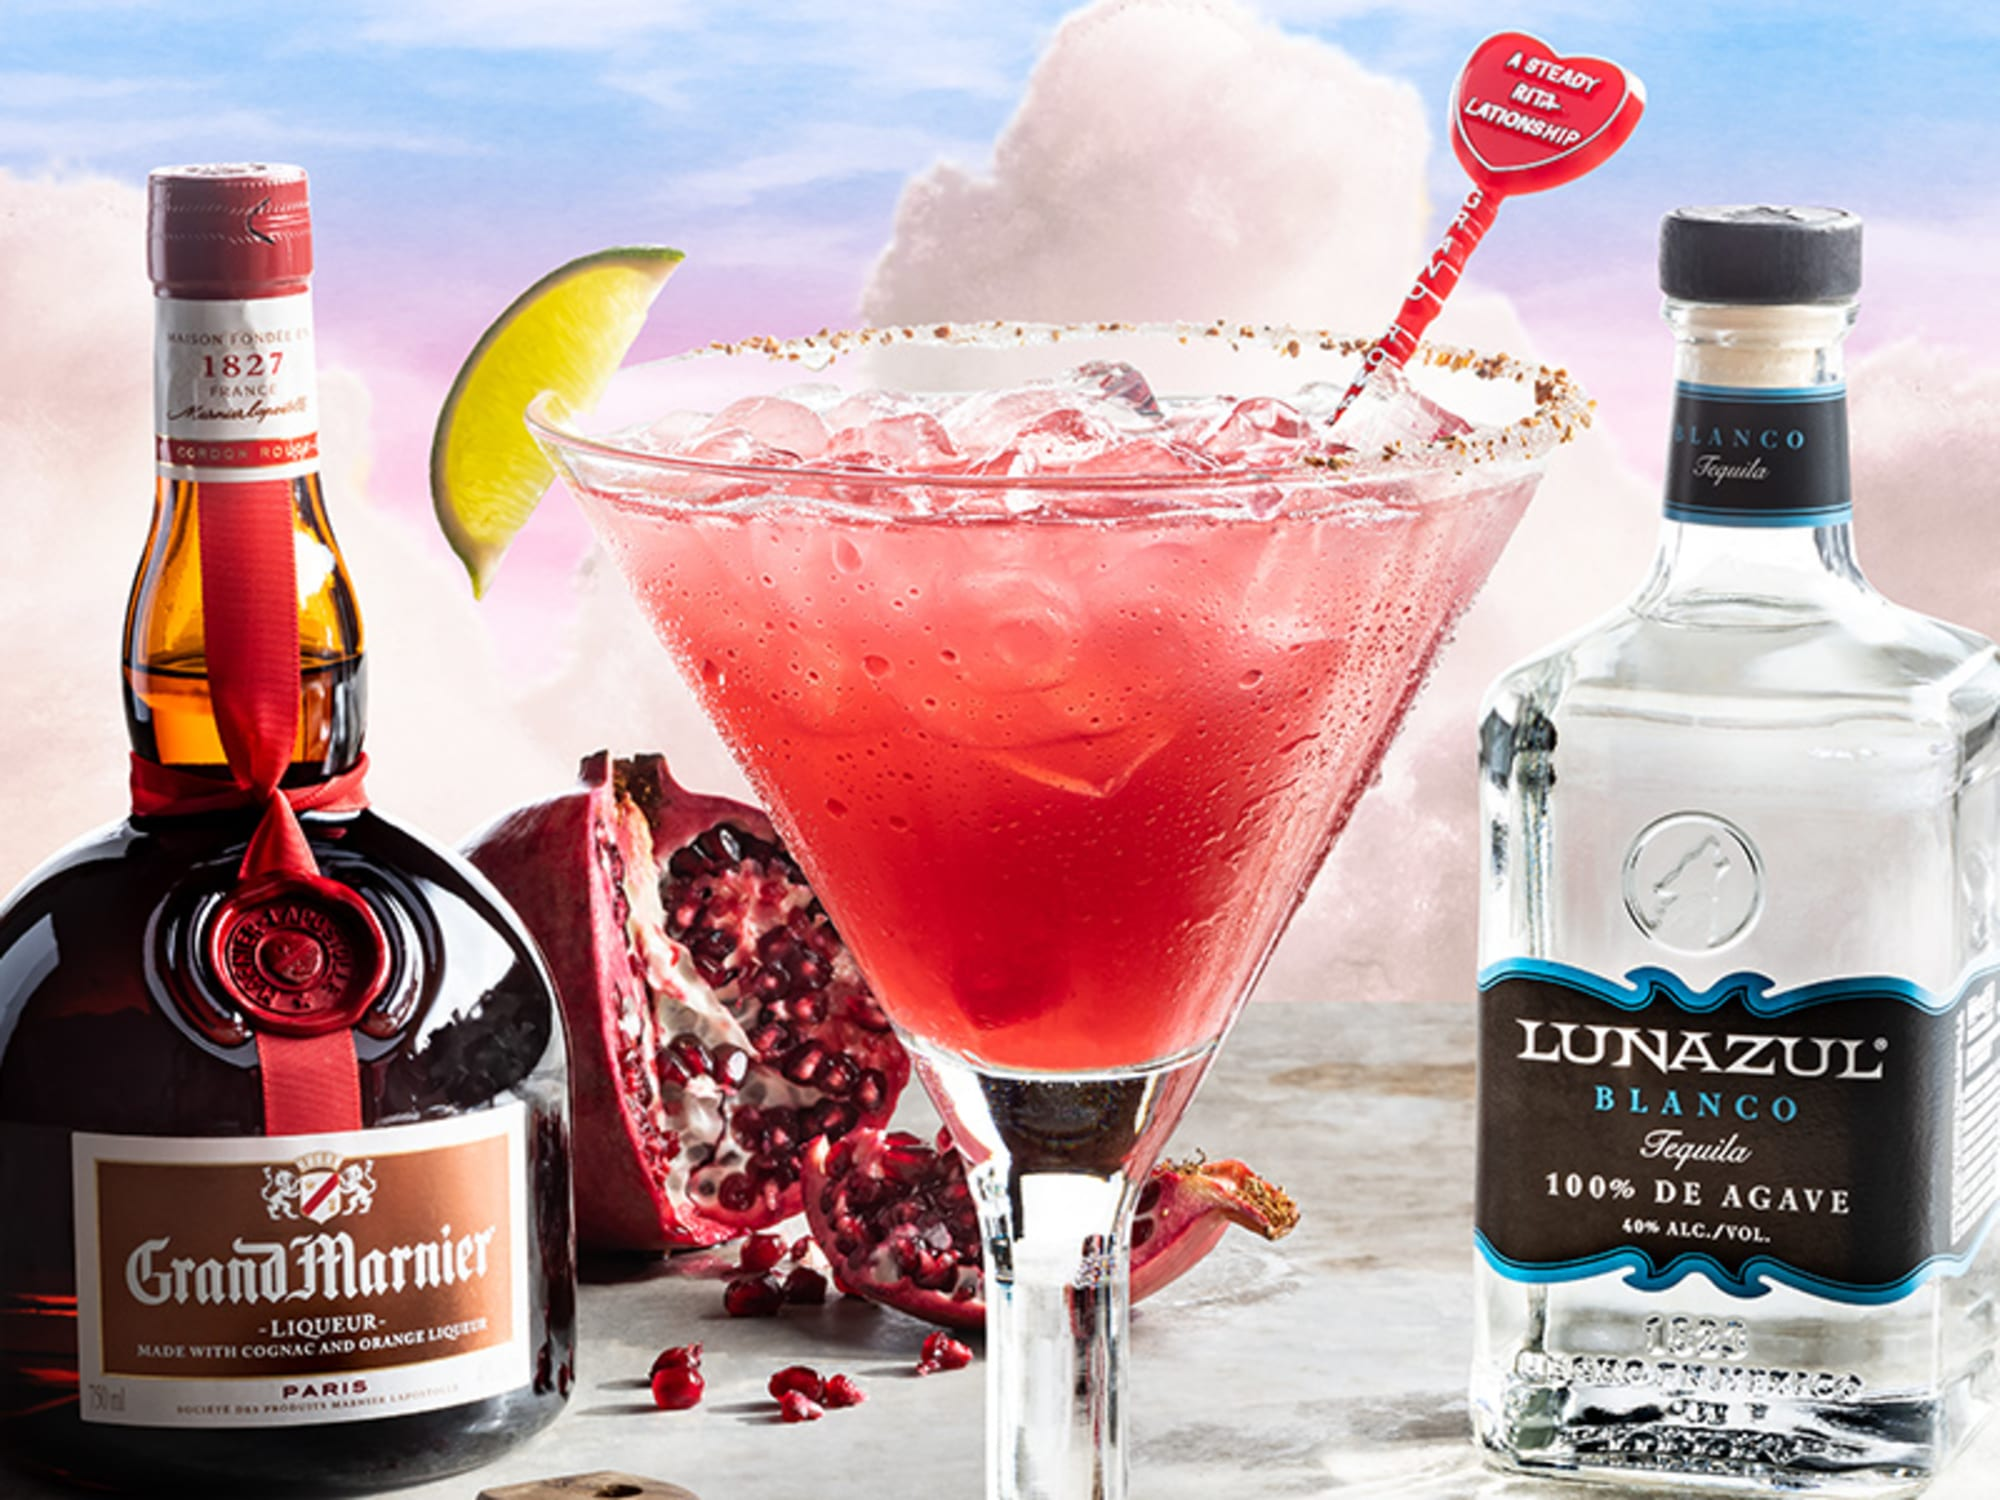 Chili S Margarita Of The Month For February Is A Grand Romance